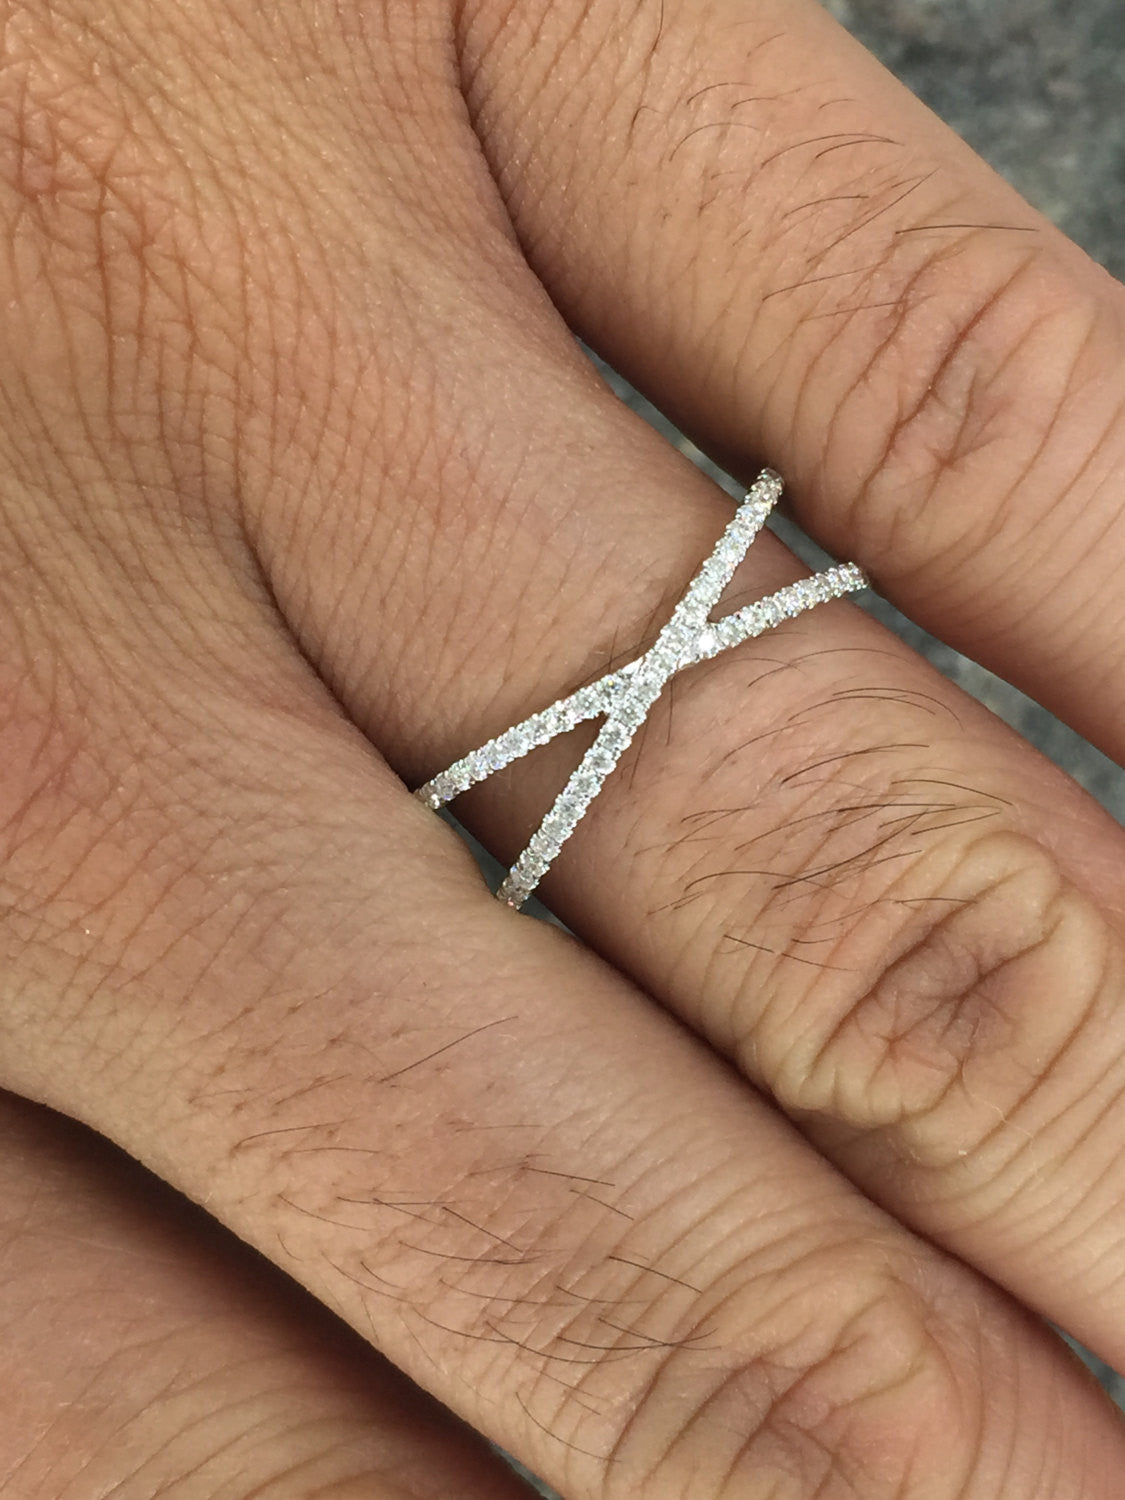 14kt White Gold Diamond Twist Intertwined Band Promise Ring Cross X